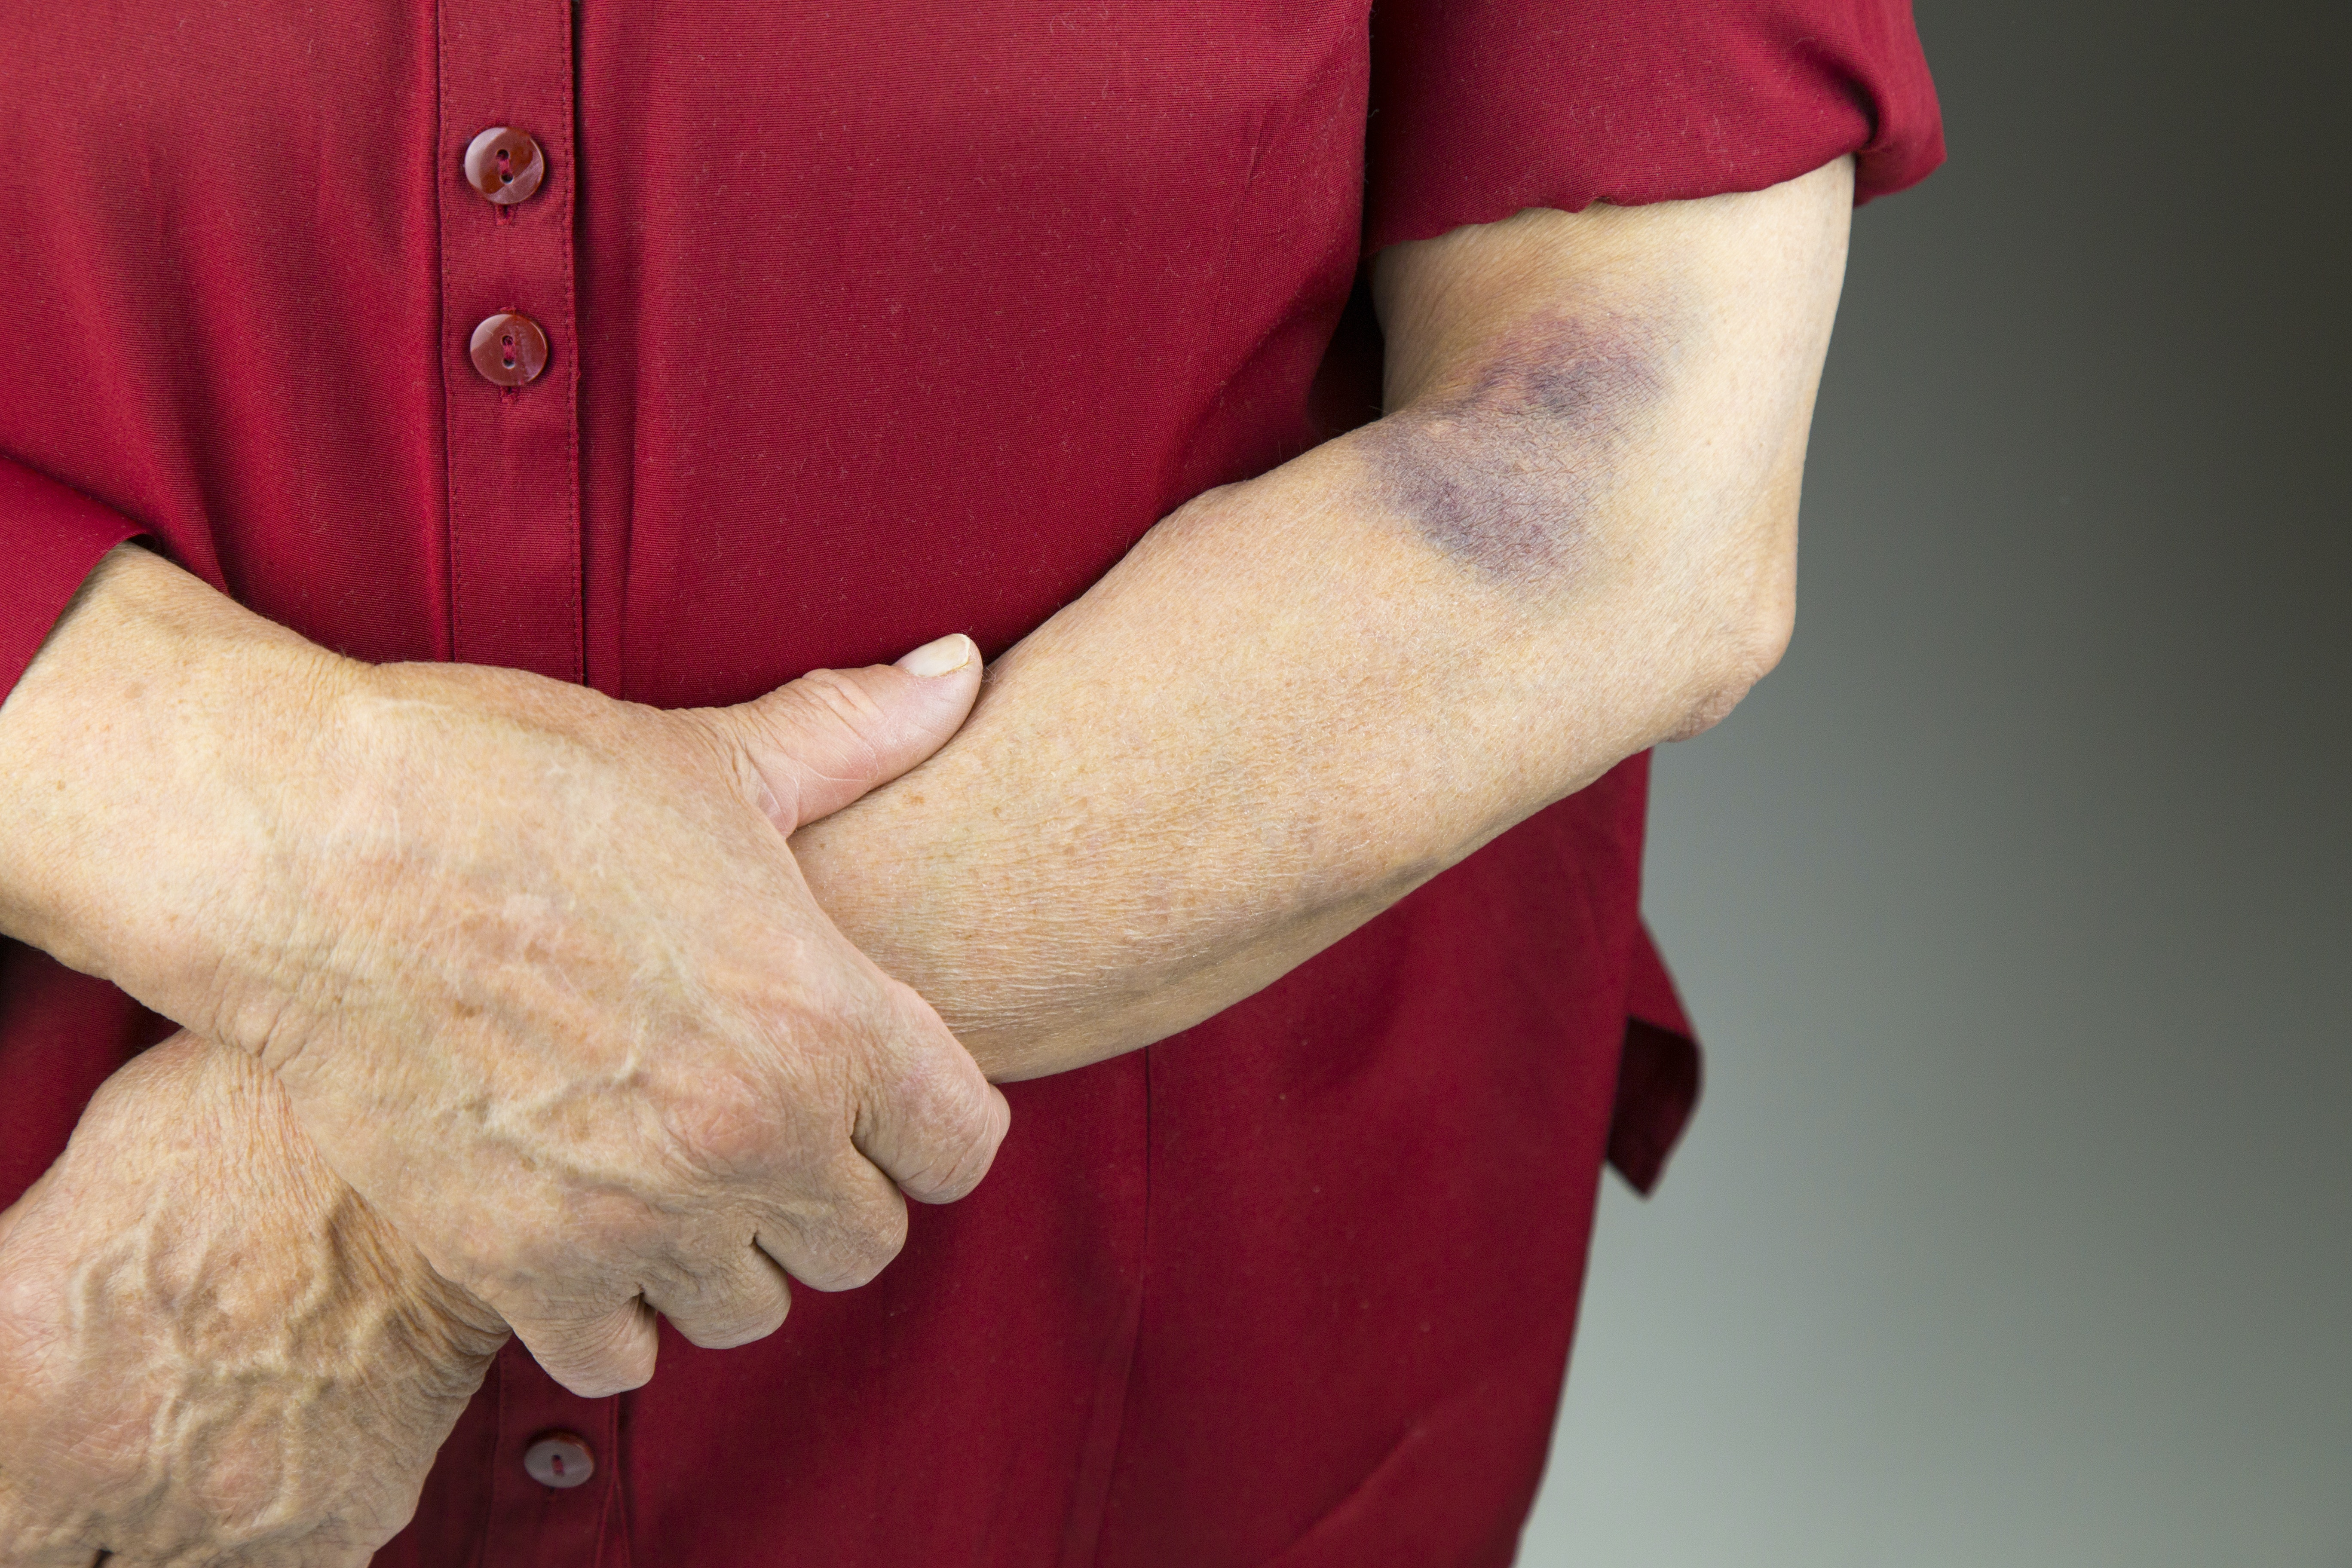 An image depicting a person suffering from unexplained bruising symptoms